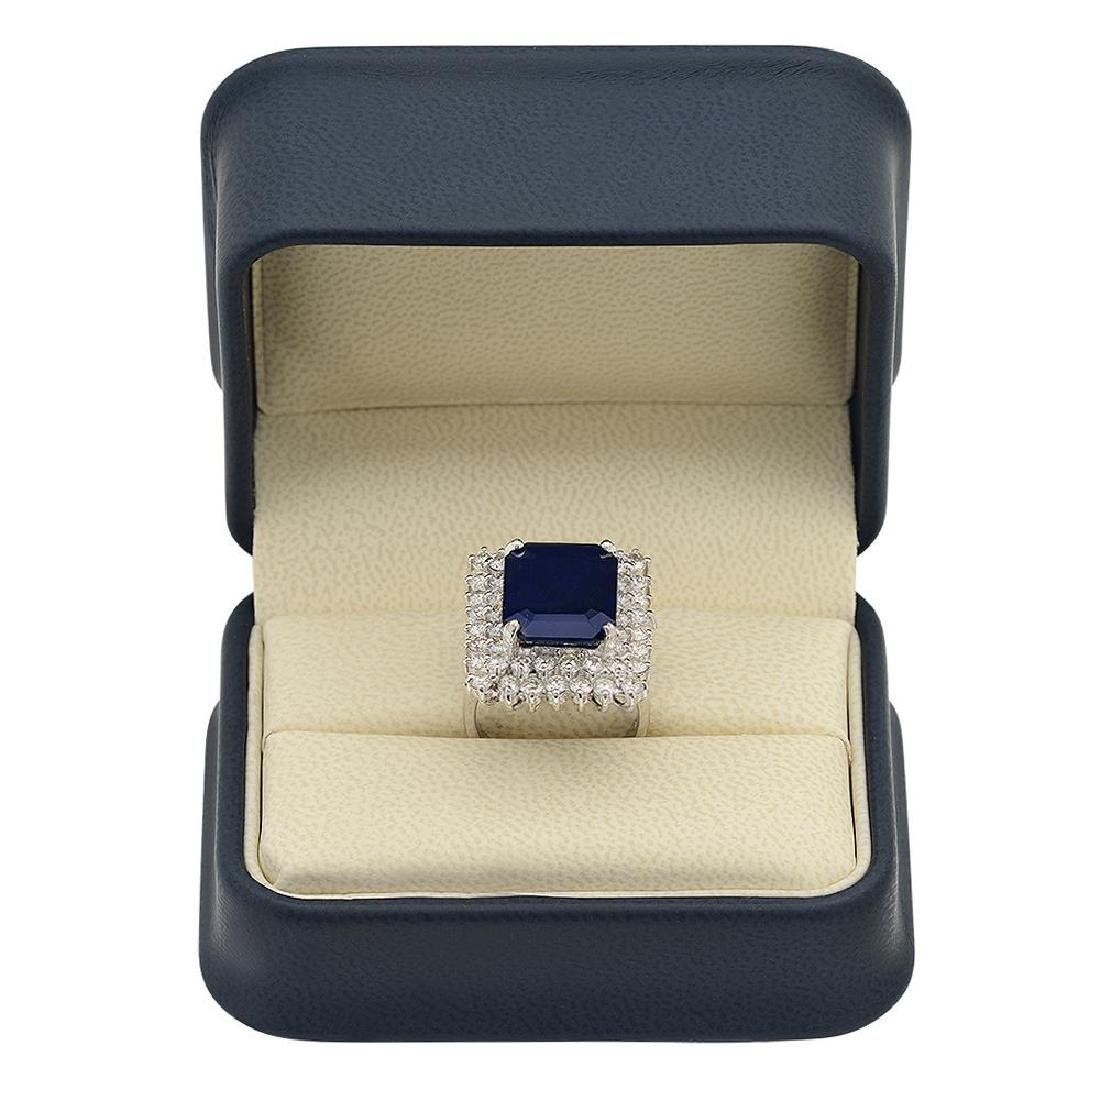 14K Gold 10.40ct Sapphire 2.69ct Diamond Ring - 4